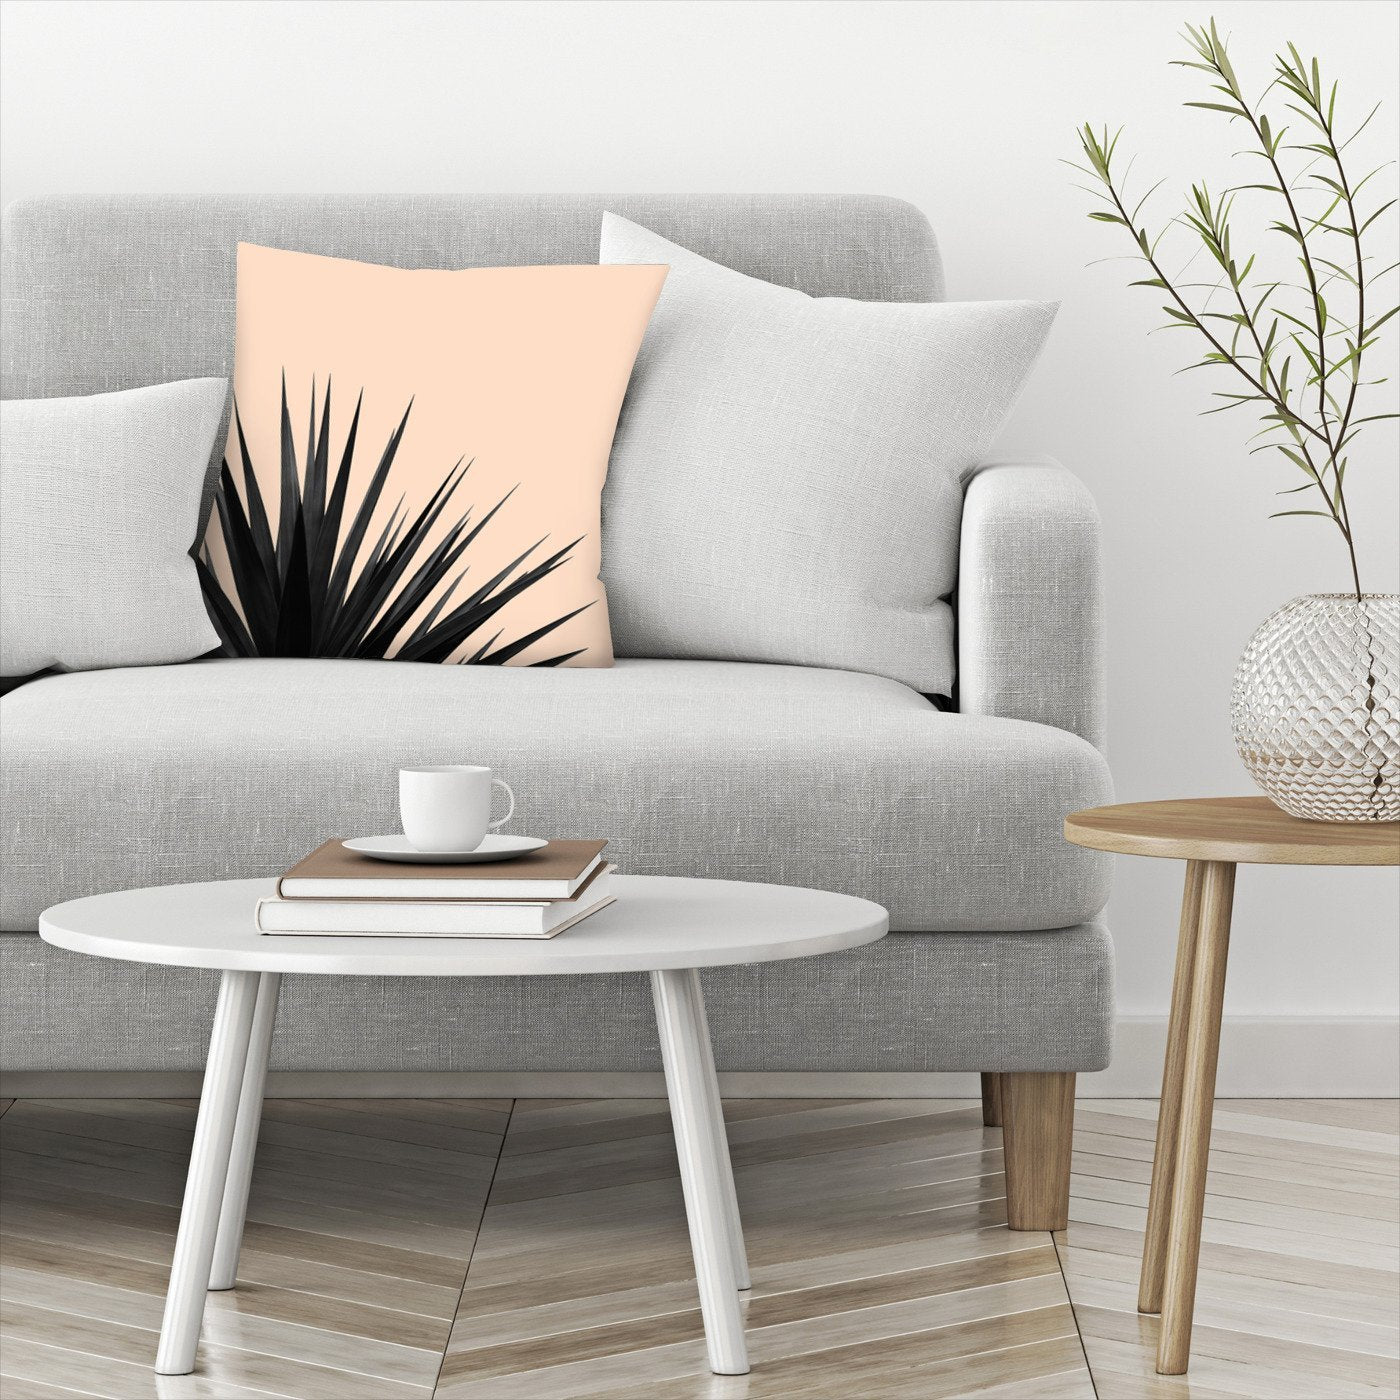 Black Palms On Pink by Emanuela Carratoni Decorative Pillow - Decorative Pillow - Americanflat